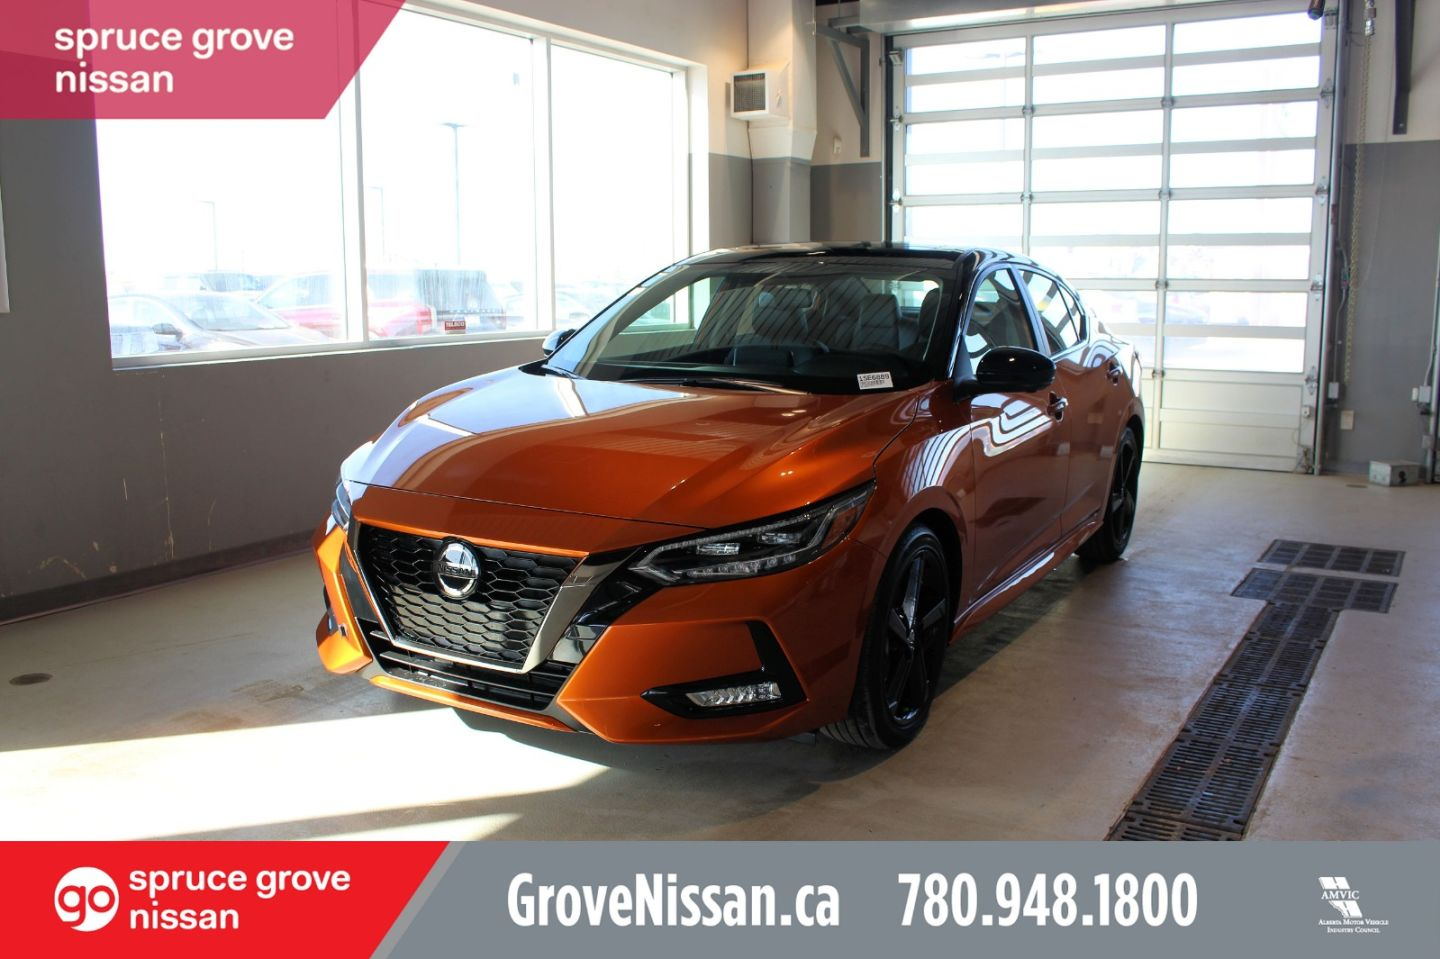 2021 Nissan Sentra SR for sale in Spruce Grove, Alberta